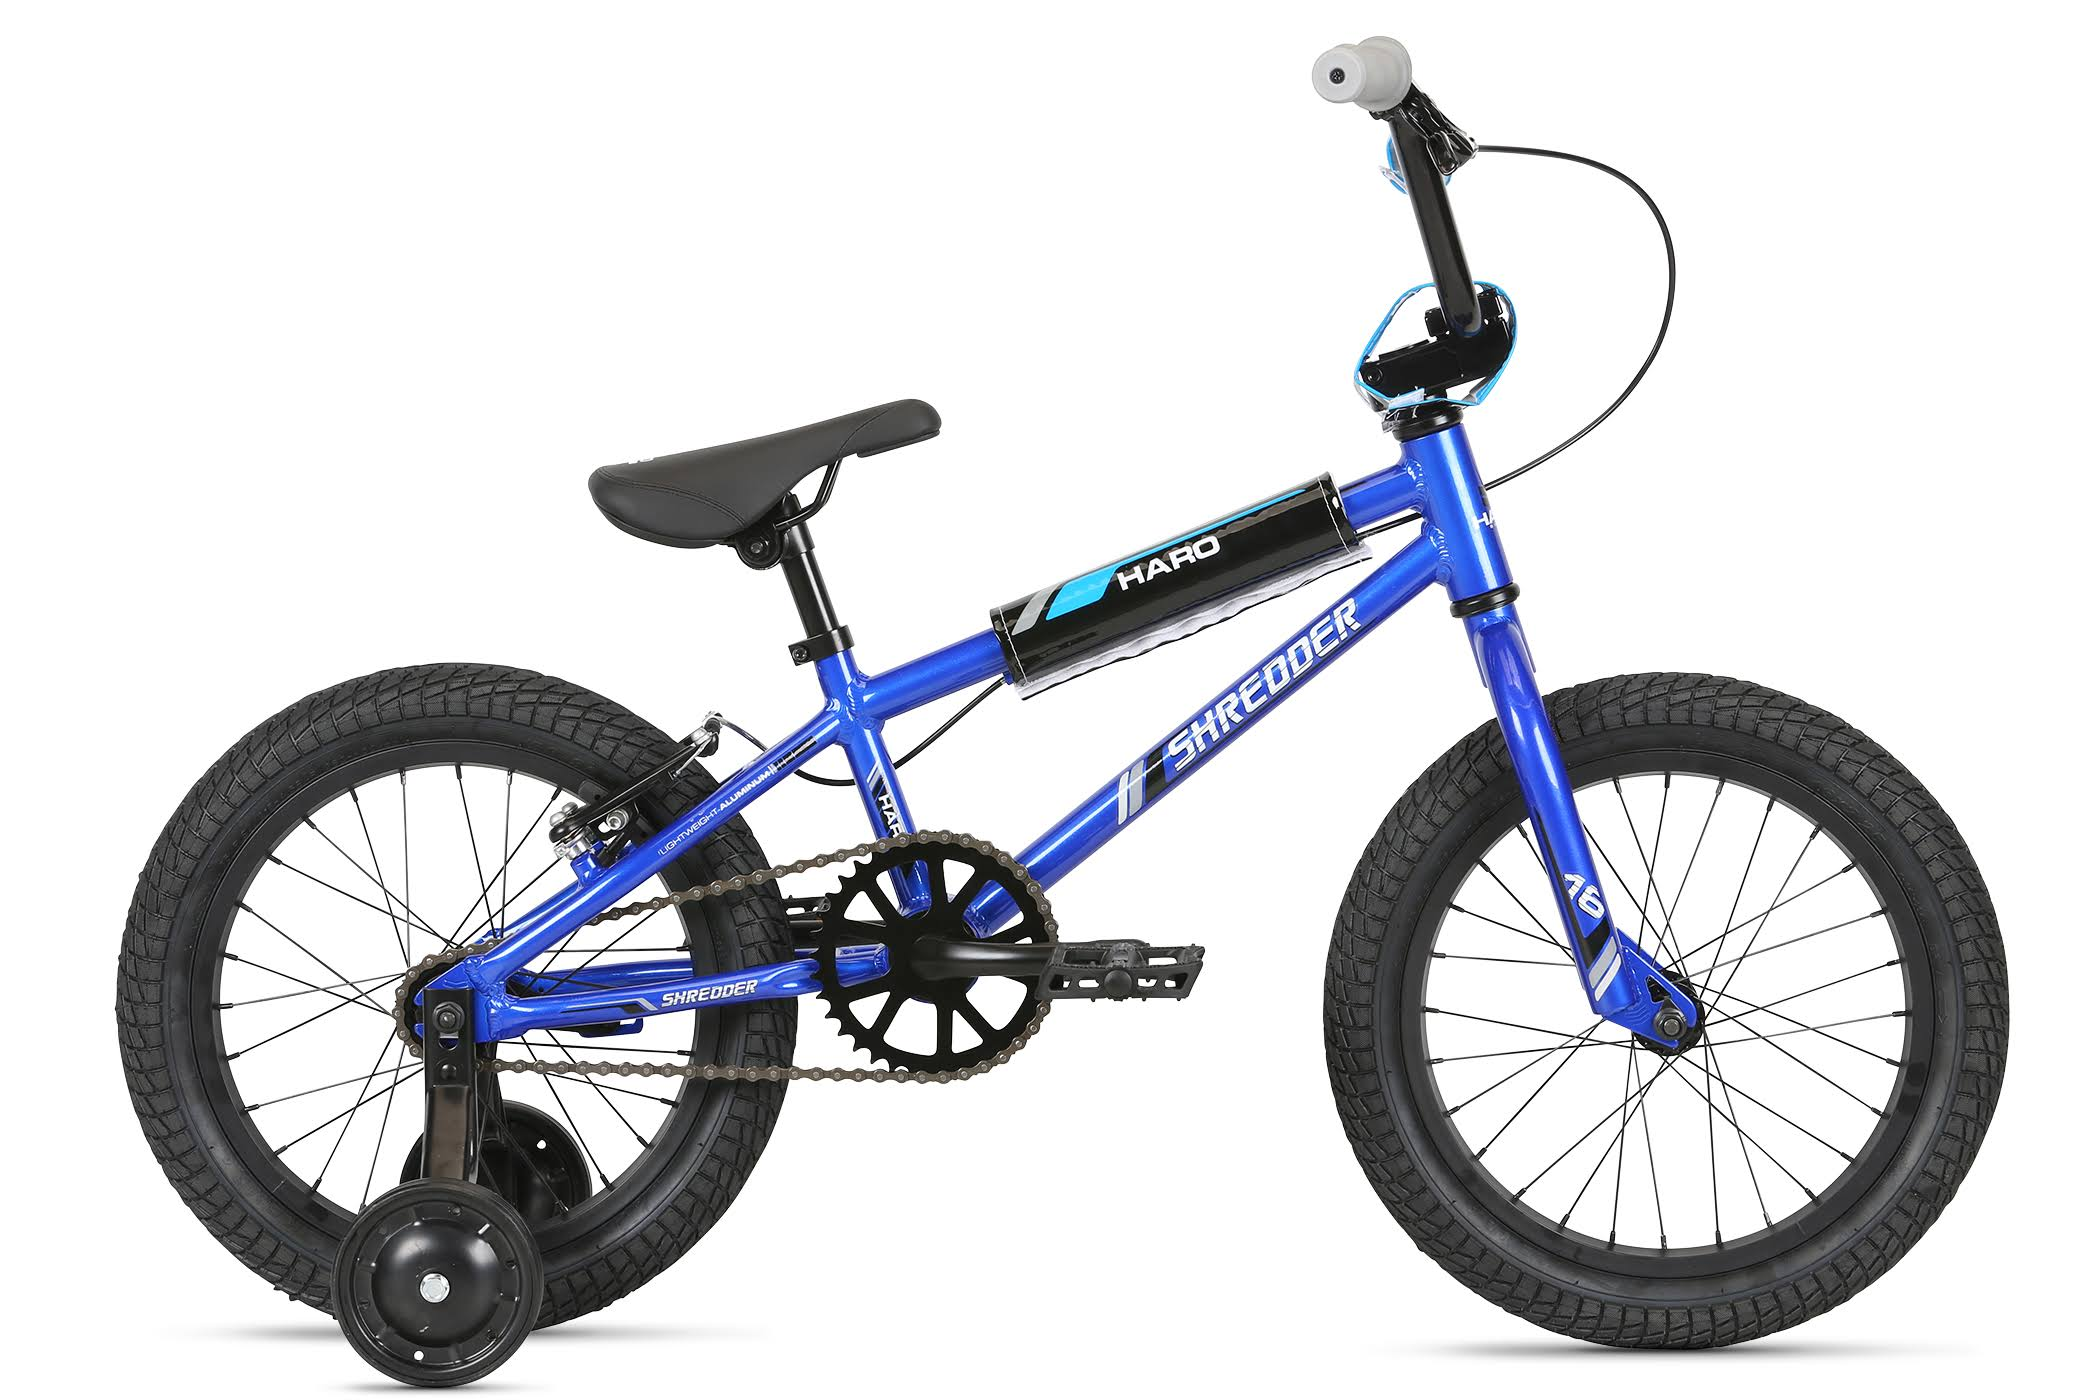 Haro 2020 Shredder 16 inch Kids Bike Metallic Blue